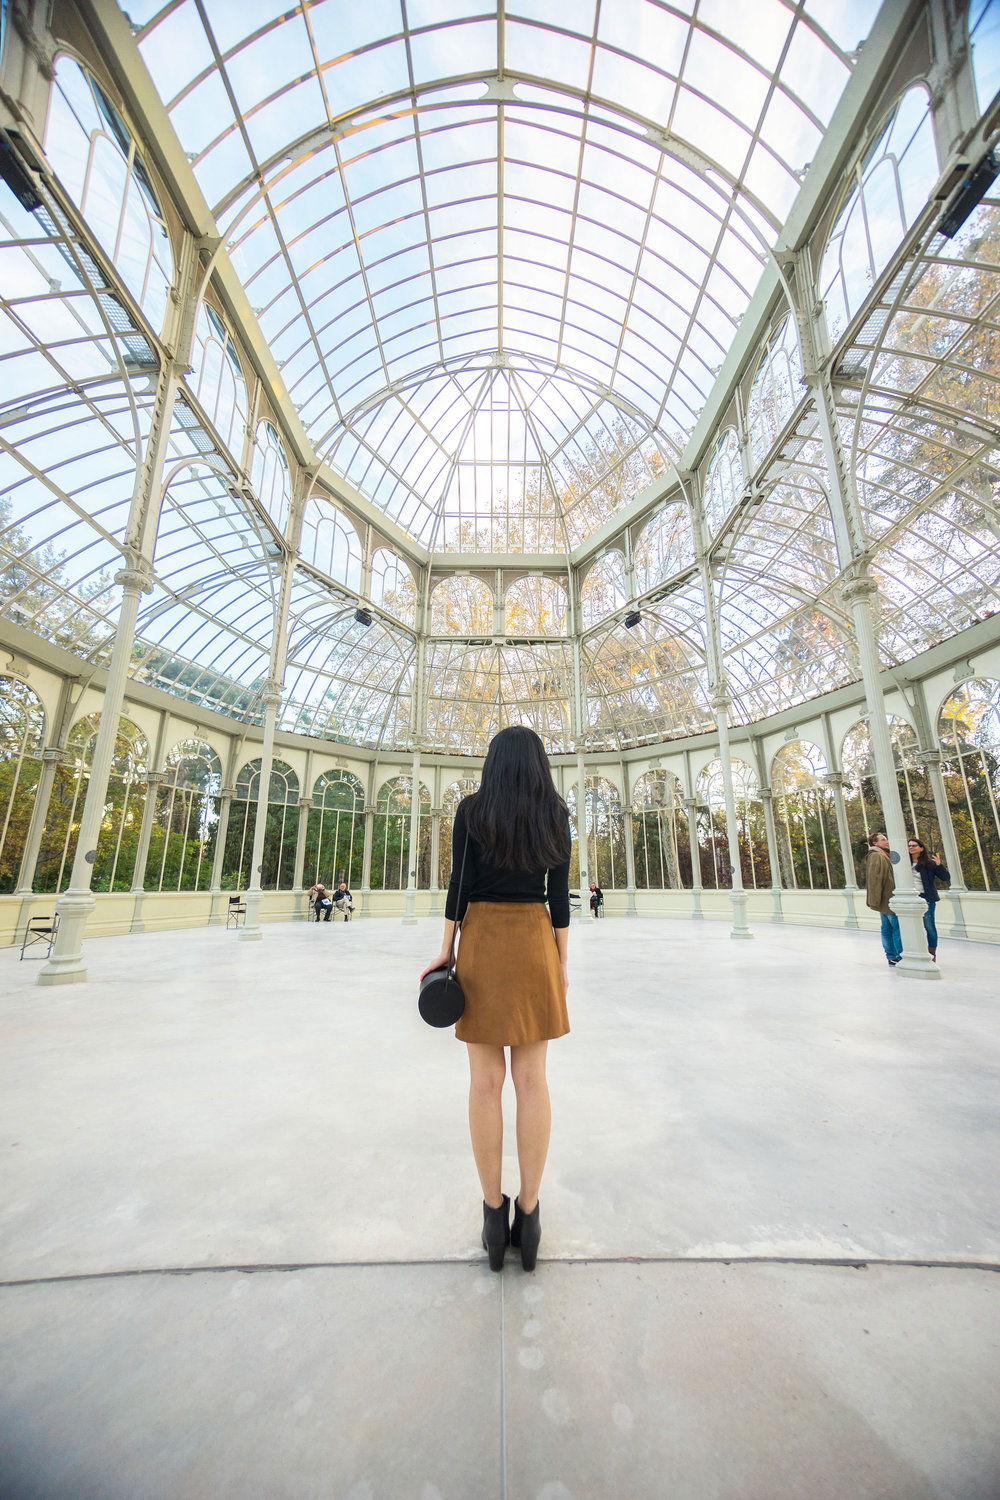 The smallest place we visited but by far my favorite -  Palacio de Cristal  deep in the heart of  Retiro Park